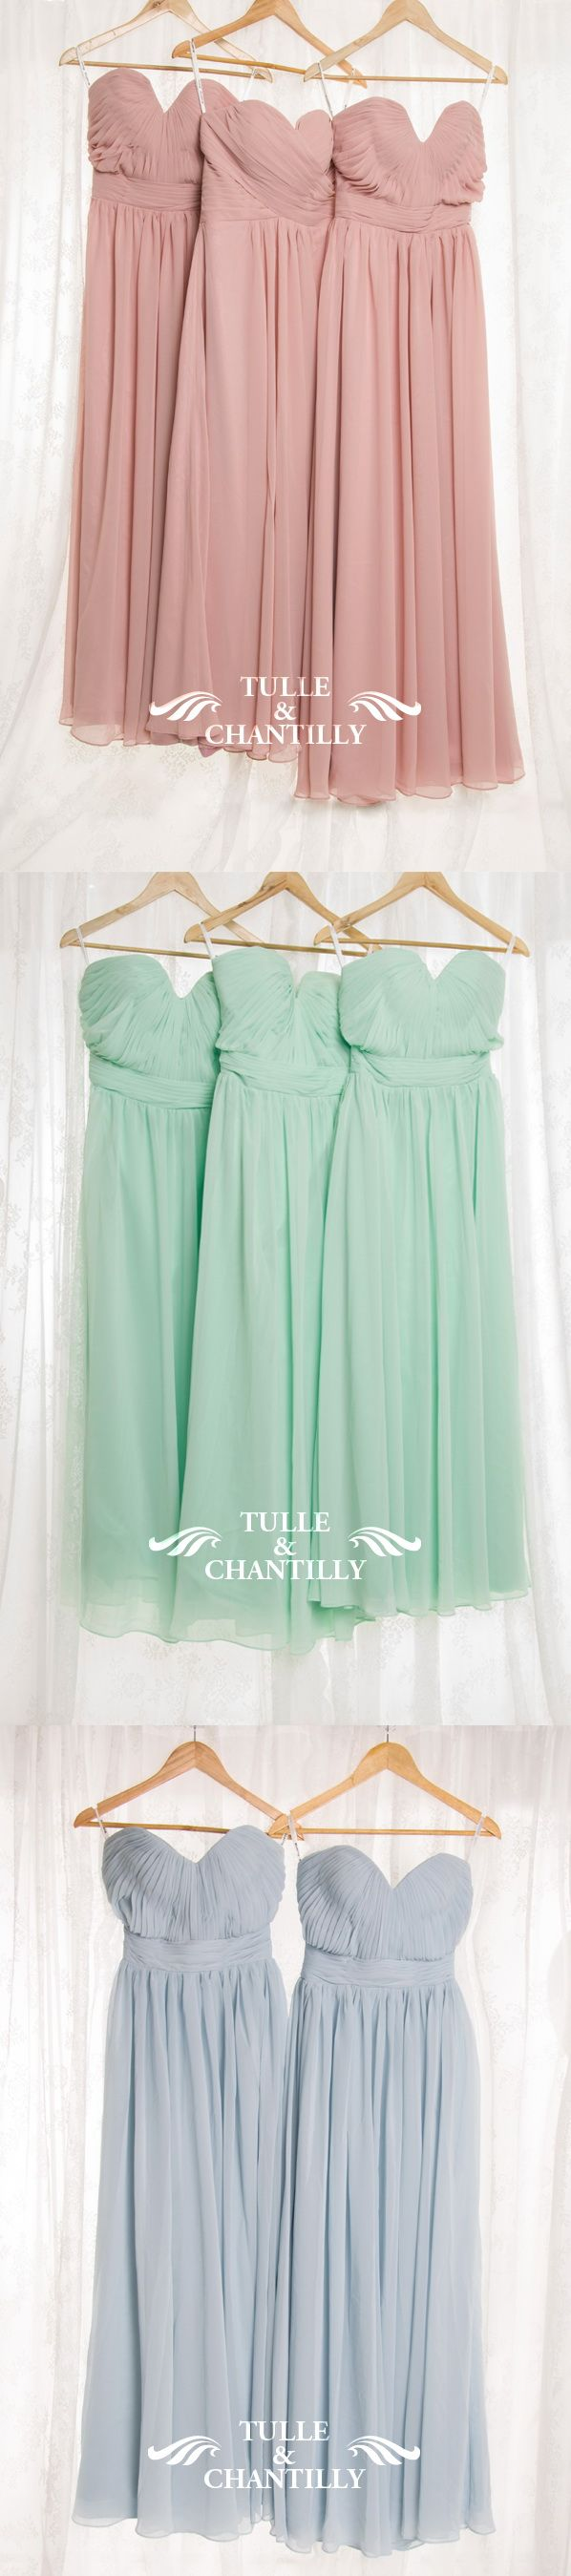 long strapless sweetheart chiffon bridesmaid dresses in dusty rose, mint and light blue